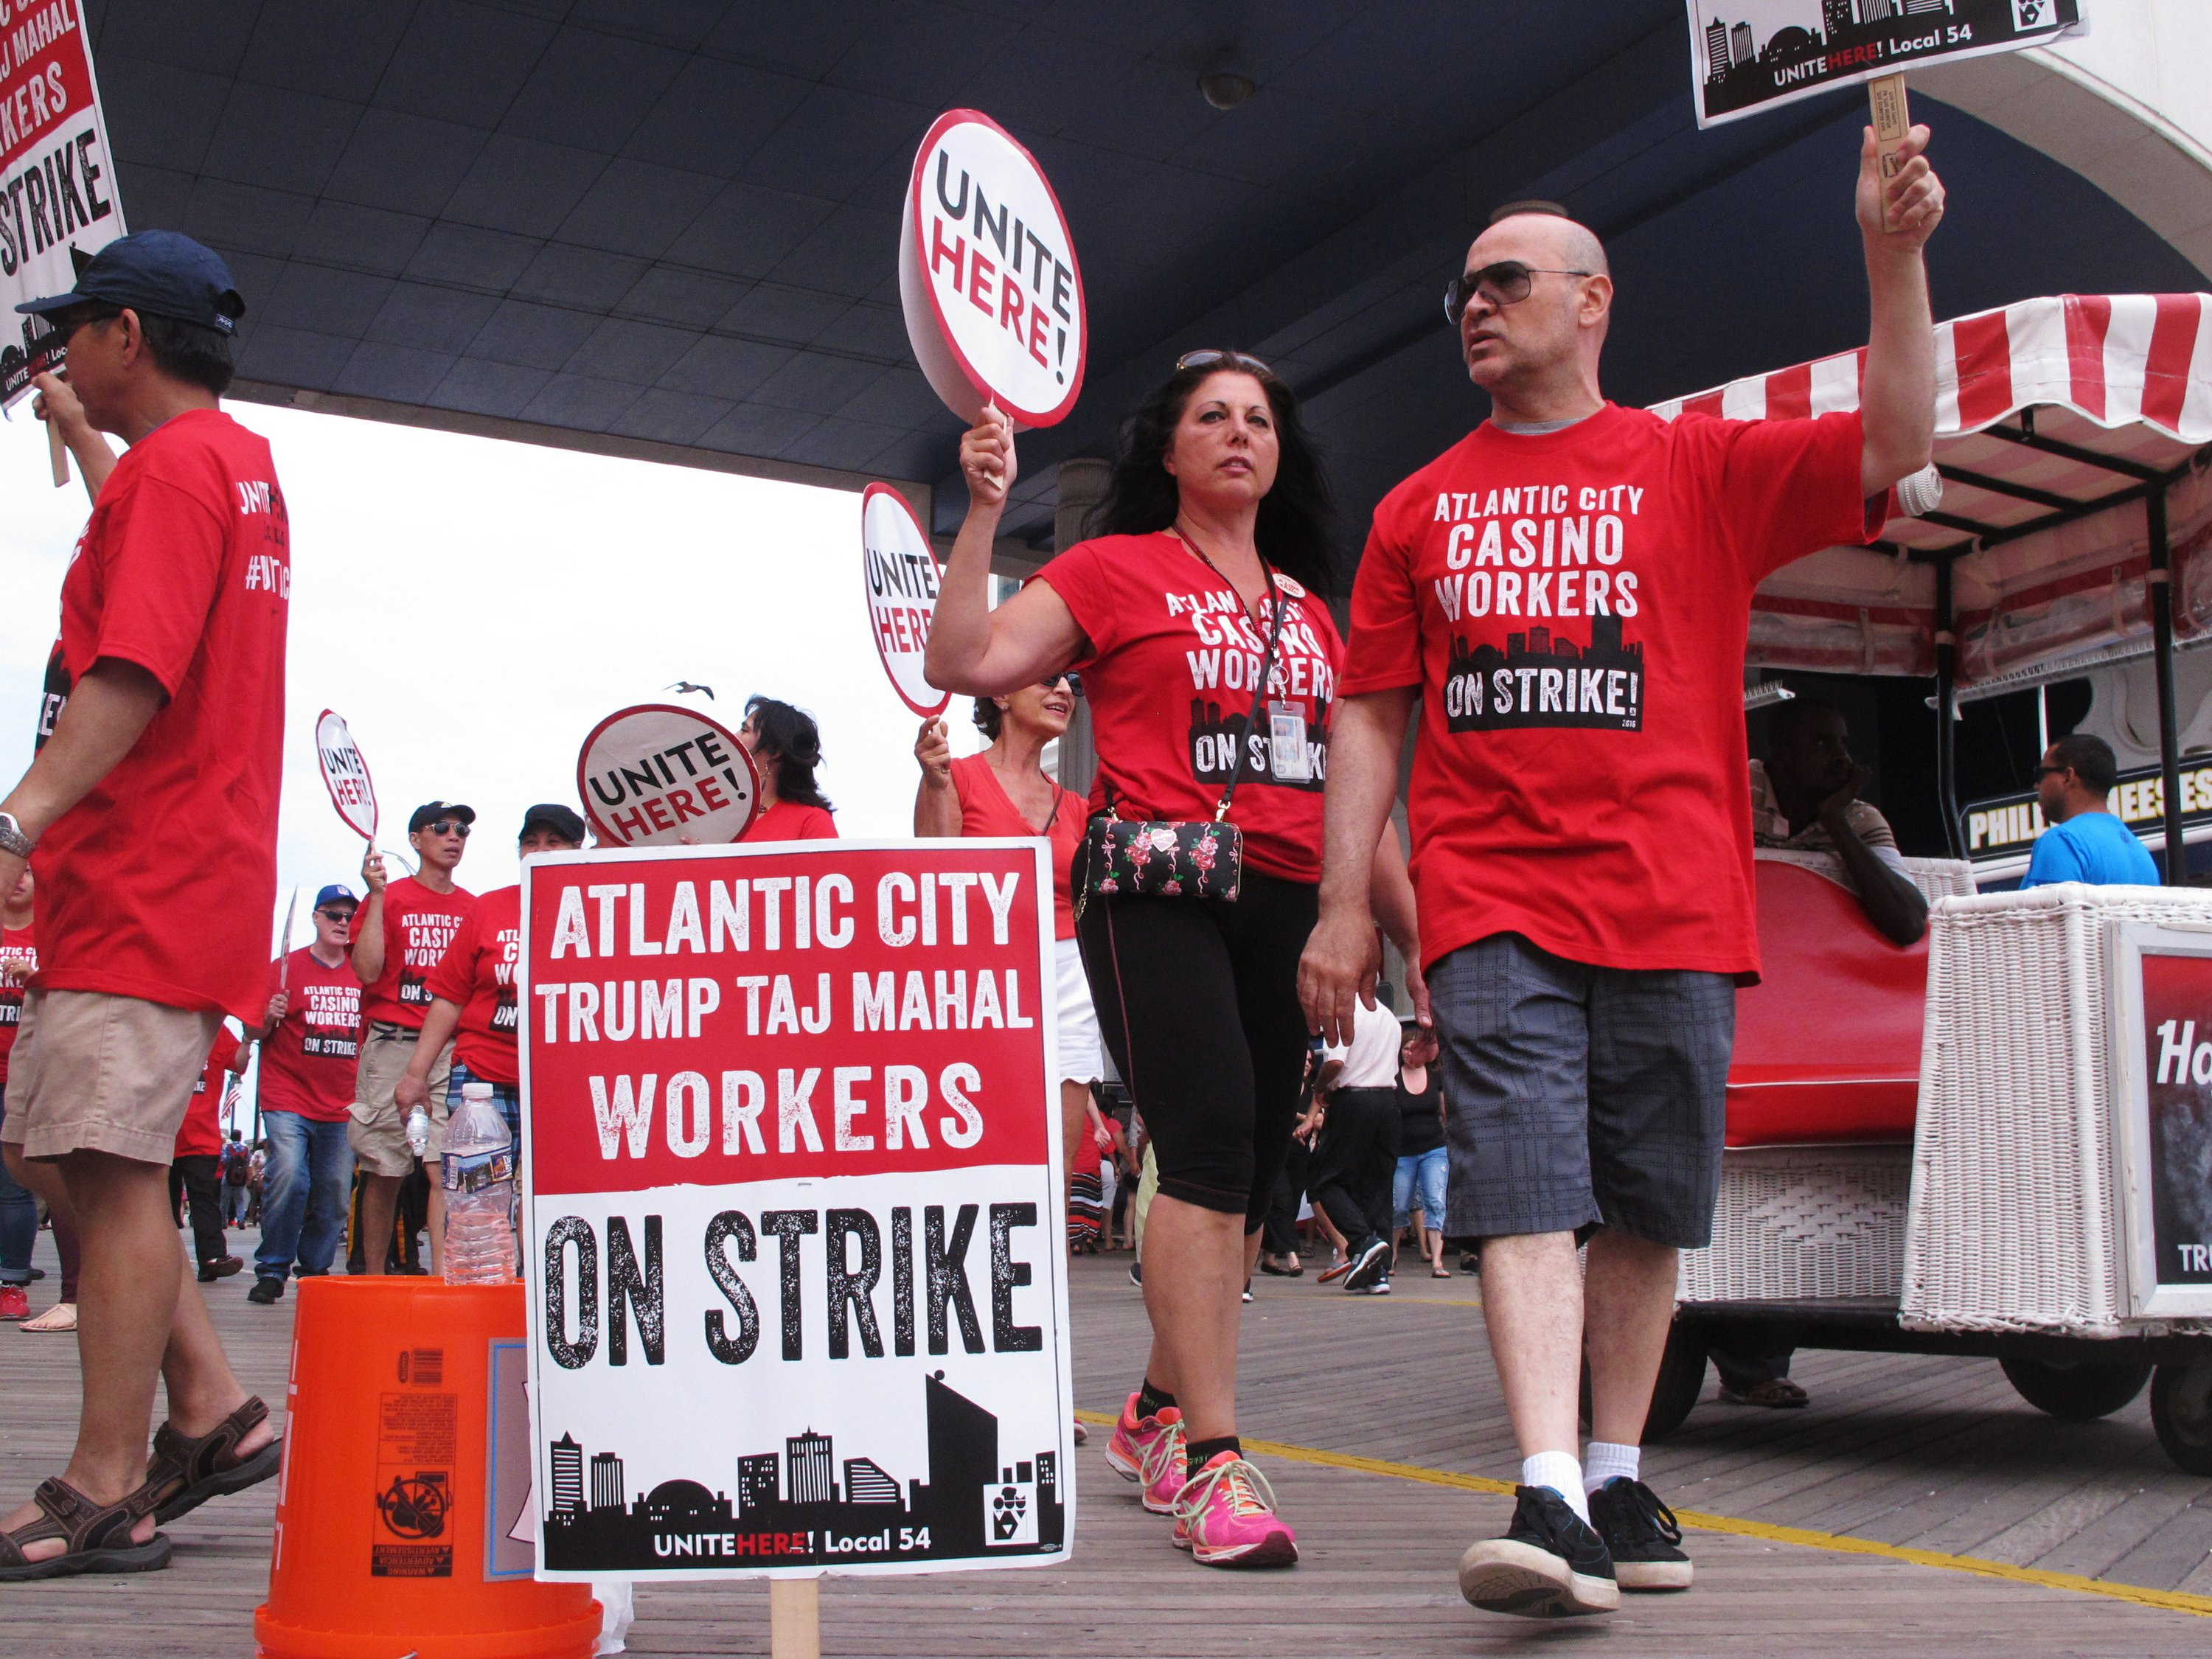 Pickets, but no deal, in Atlantic City casino strike